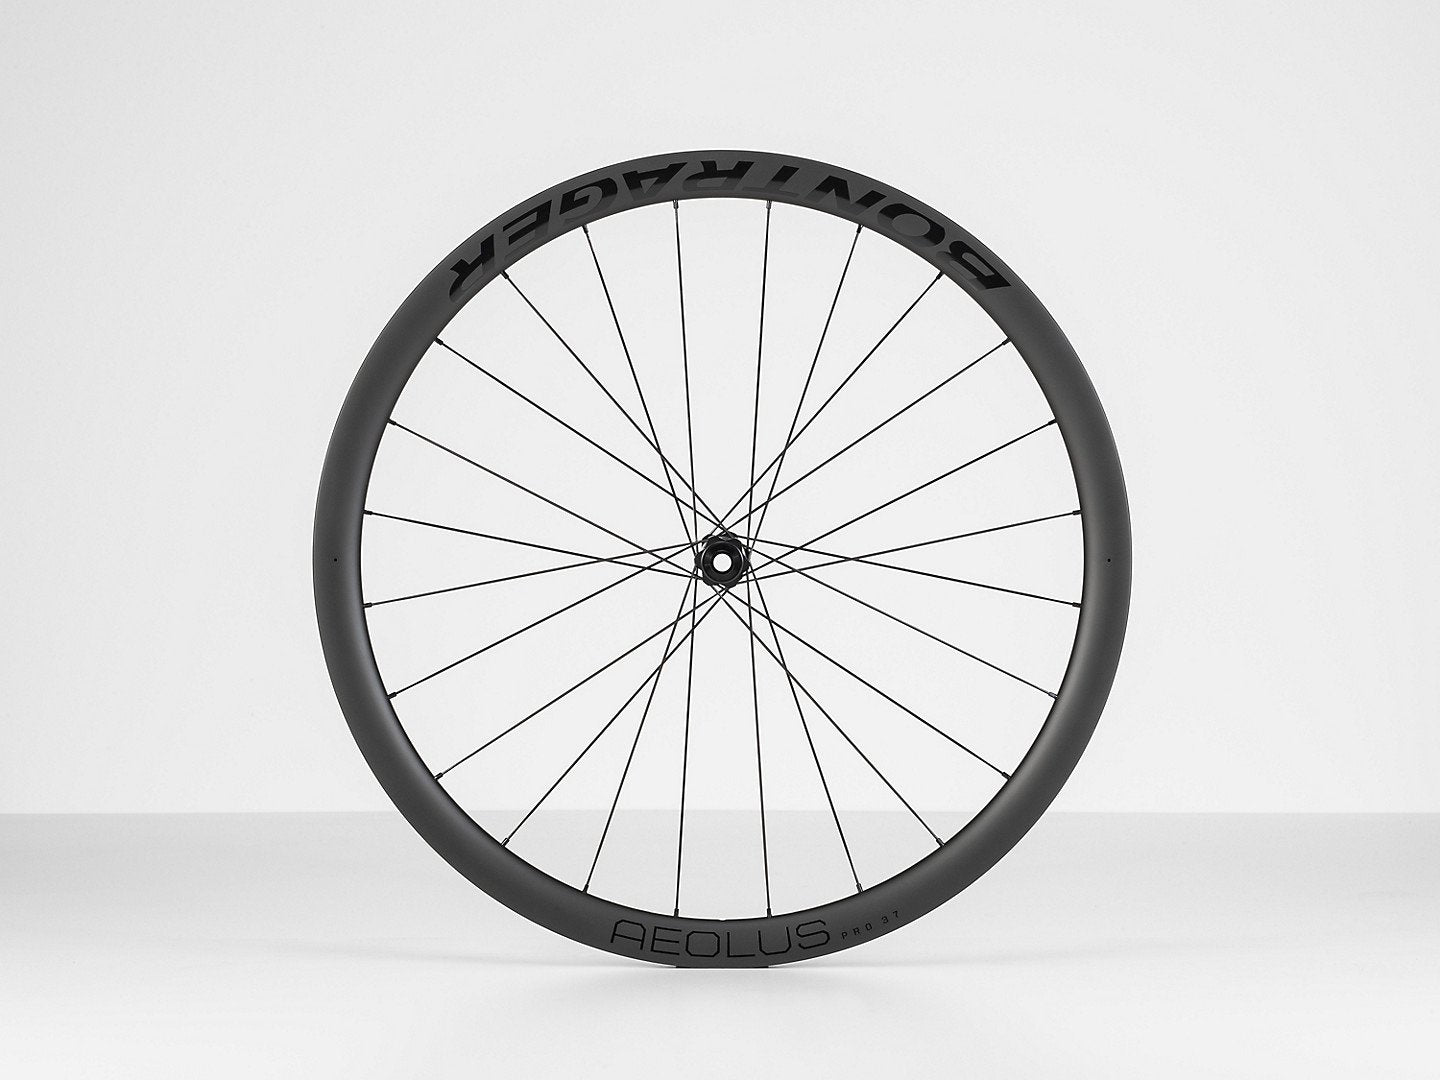 Bontrager Aeolus Pro 37 Disc Wheel - Cycles Galleria Melbourne